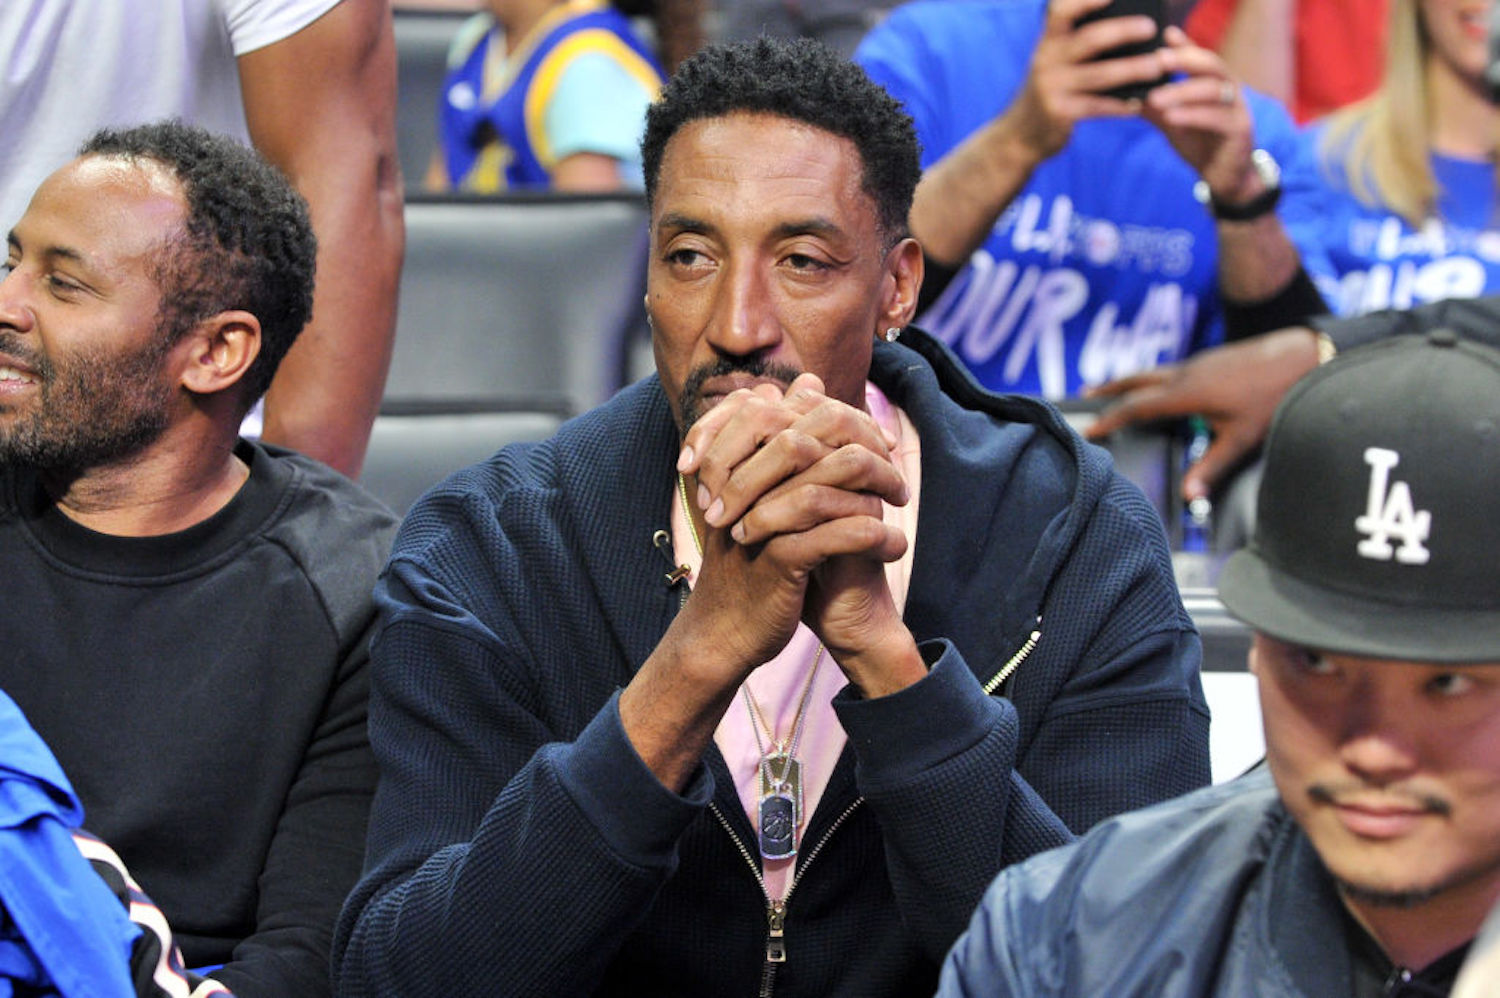 The Chicago Bulls recently hired Billy Donovan to take over as the head coach, but former Bull Scottie Pippen doesn't approve.